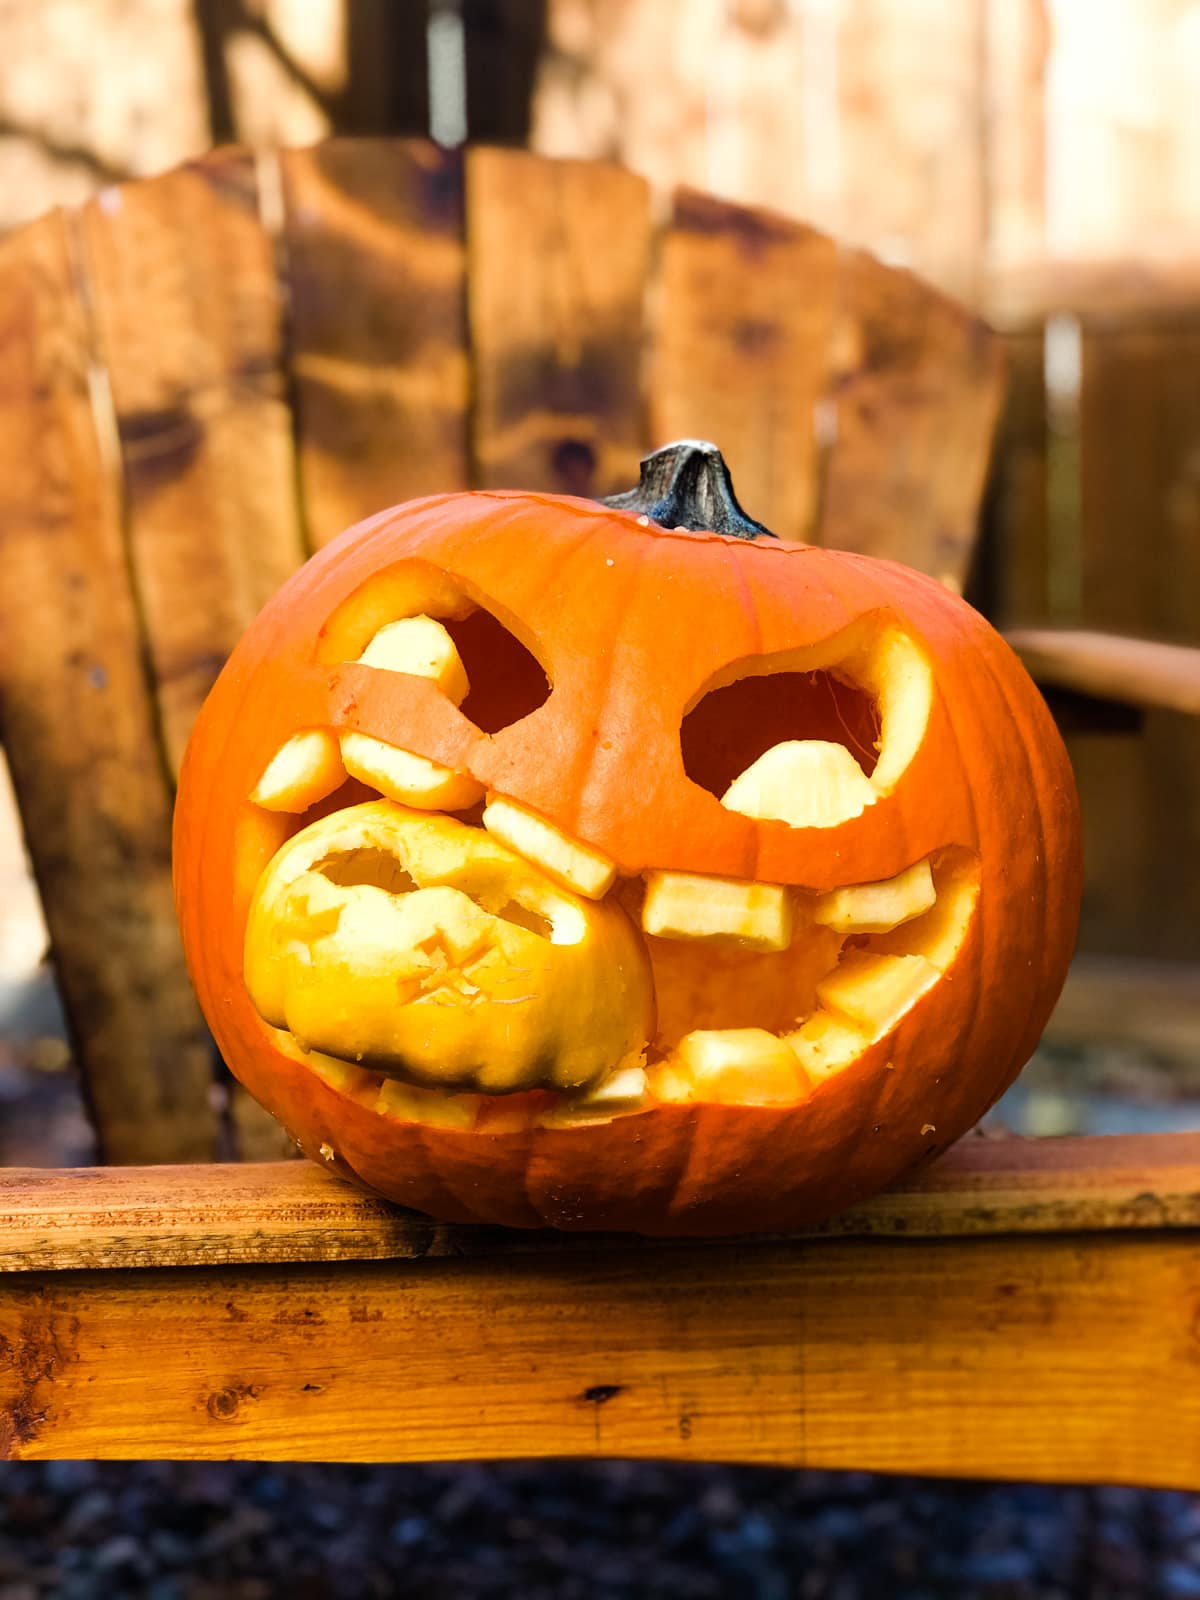 a pumpkin carving with a large wide mouth. in the mouth is a small carved pumpkin